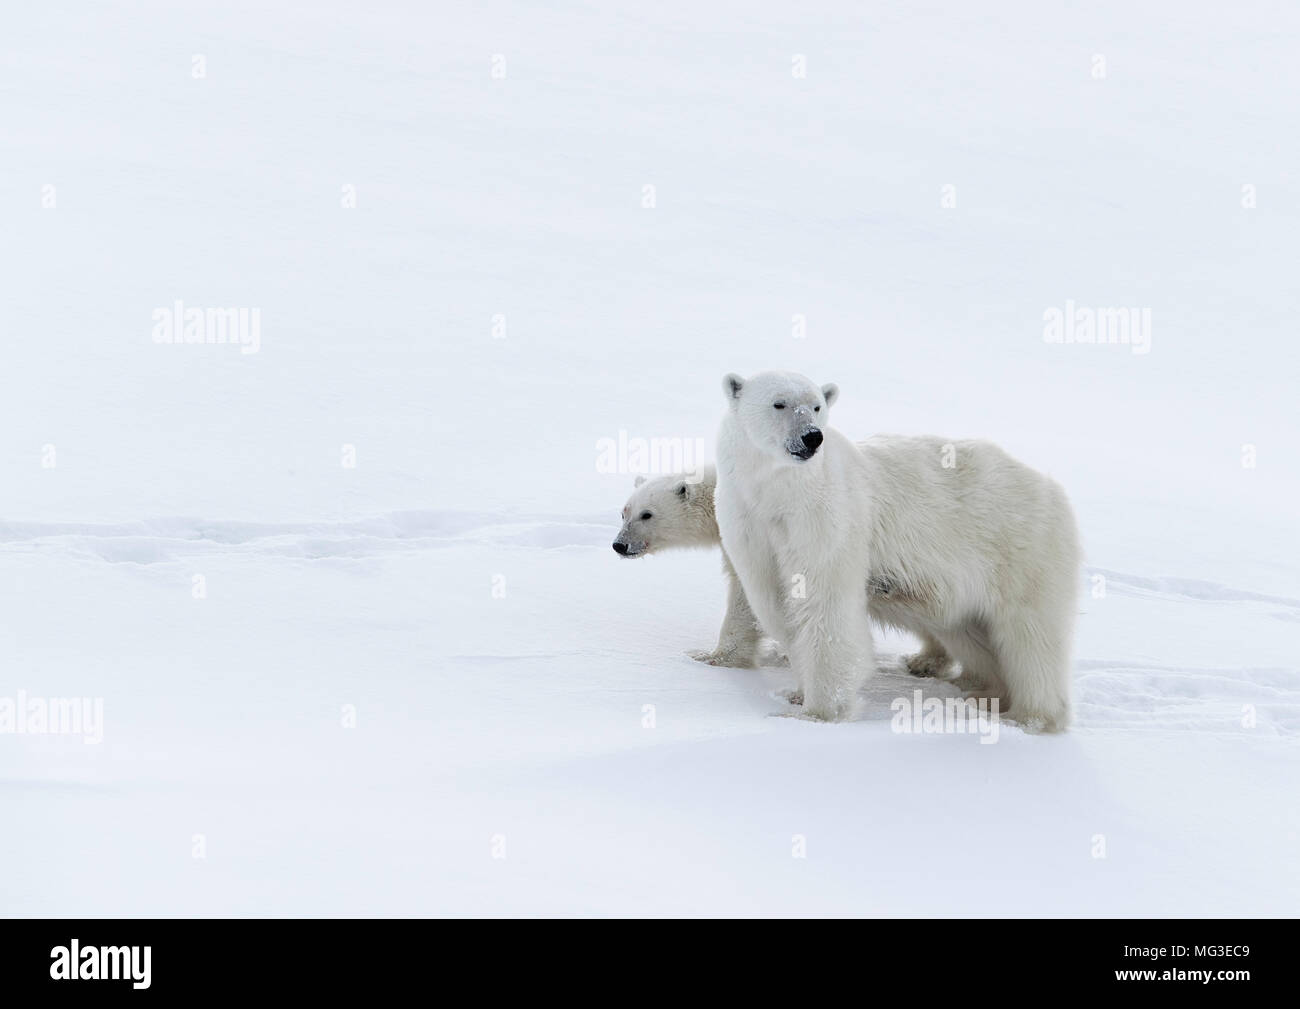 Mother polar bear and a yearling cub standing on an iceberg, Baffin Island, Canada, nunavut, arctic - Stock Image